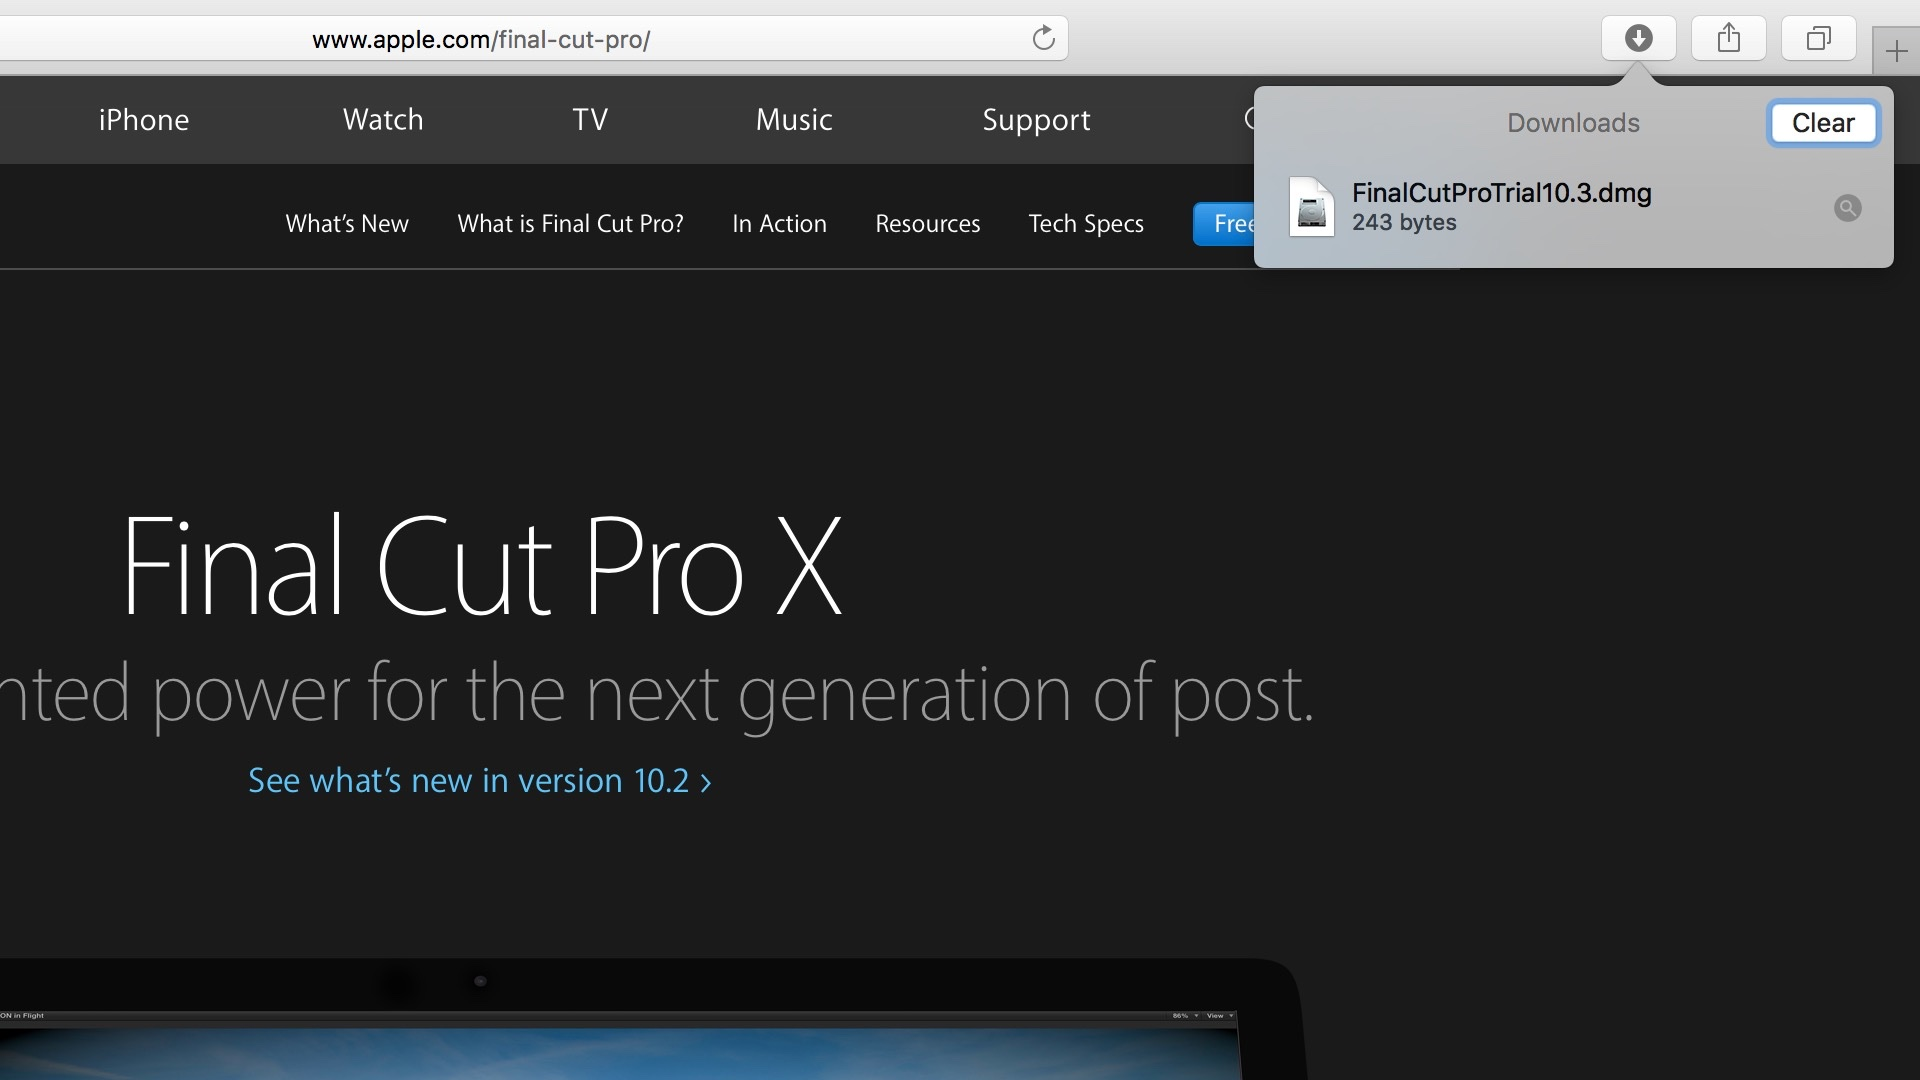 final-cut-pro-x-trial-download-10-3